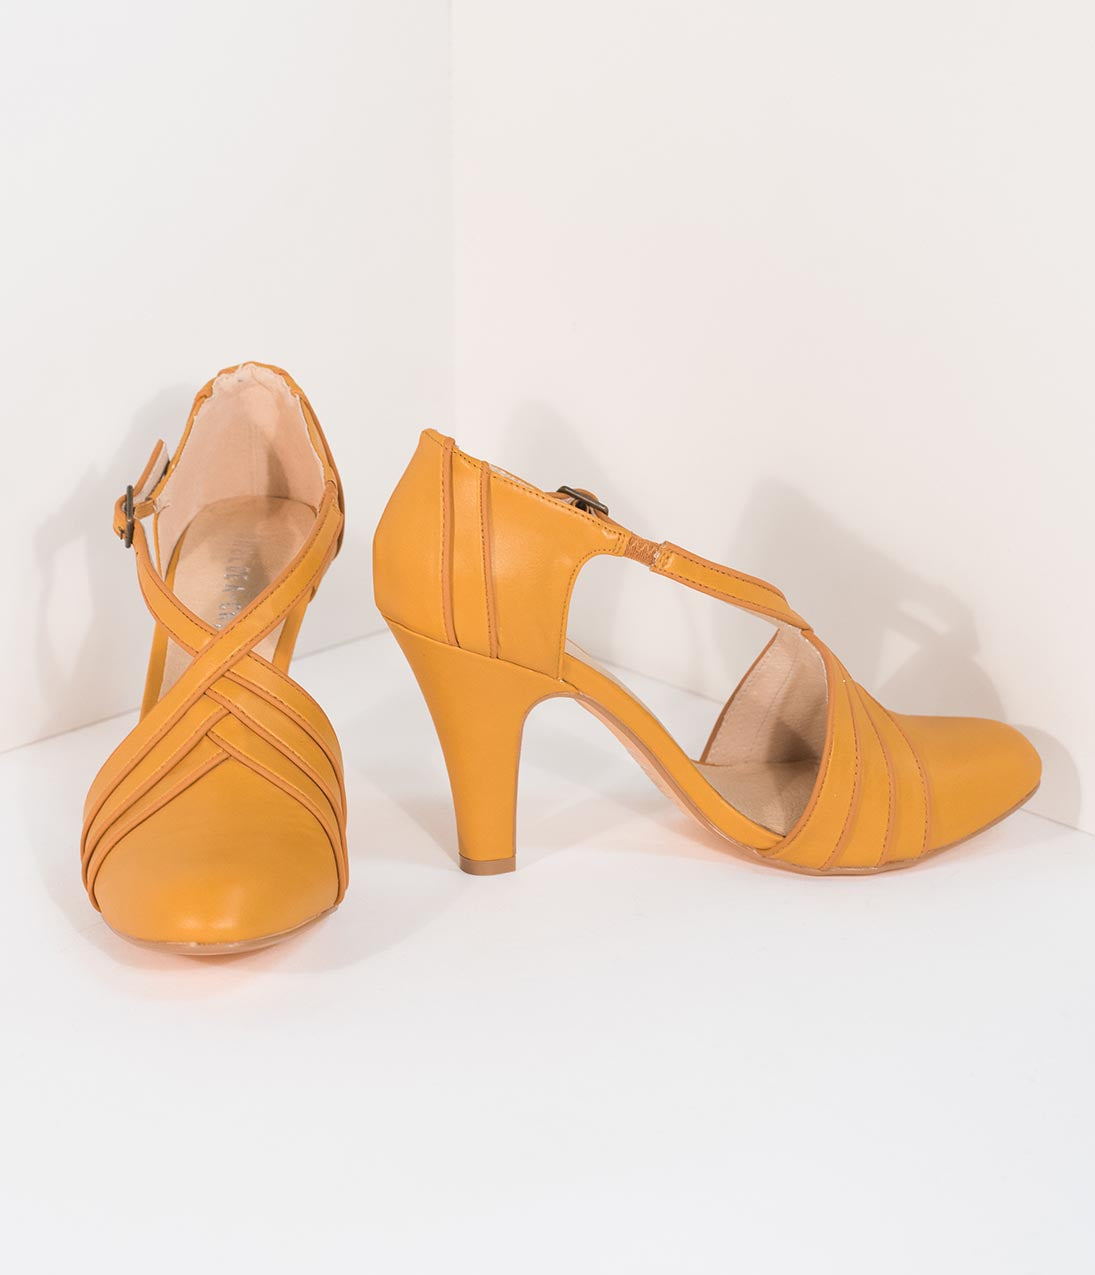 1950s Style Shoes | Heels, Flats, Saddle Shoes Chelsea Crew Vintage Style Mustard Yellow Leatherette DOrsay Lana Heels $64.00 AT vintagedancer.com